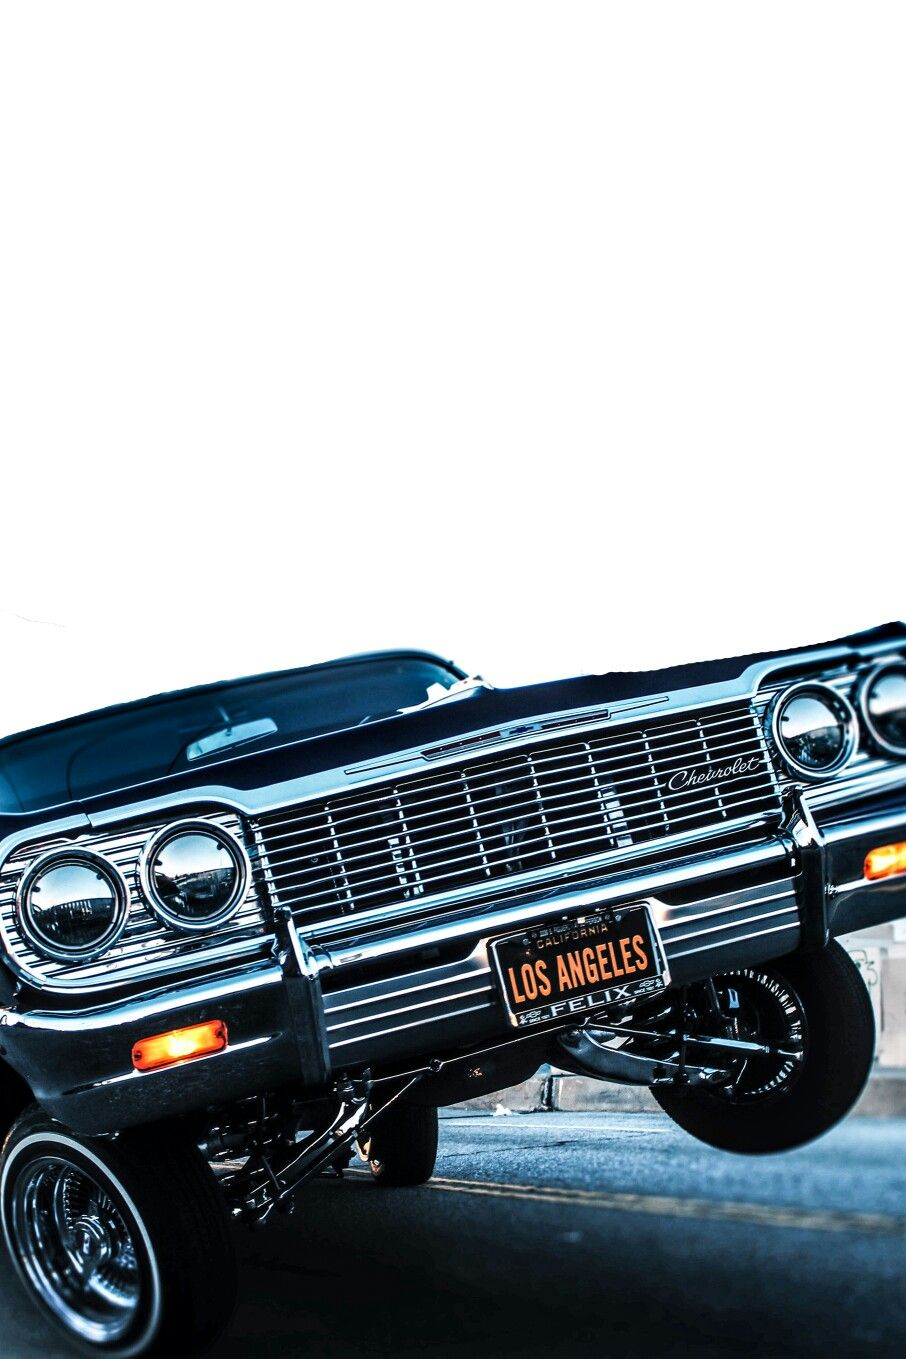 Pin by Rajvir Bhandal on My background in 2020 Lowriders